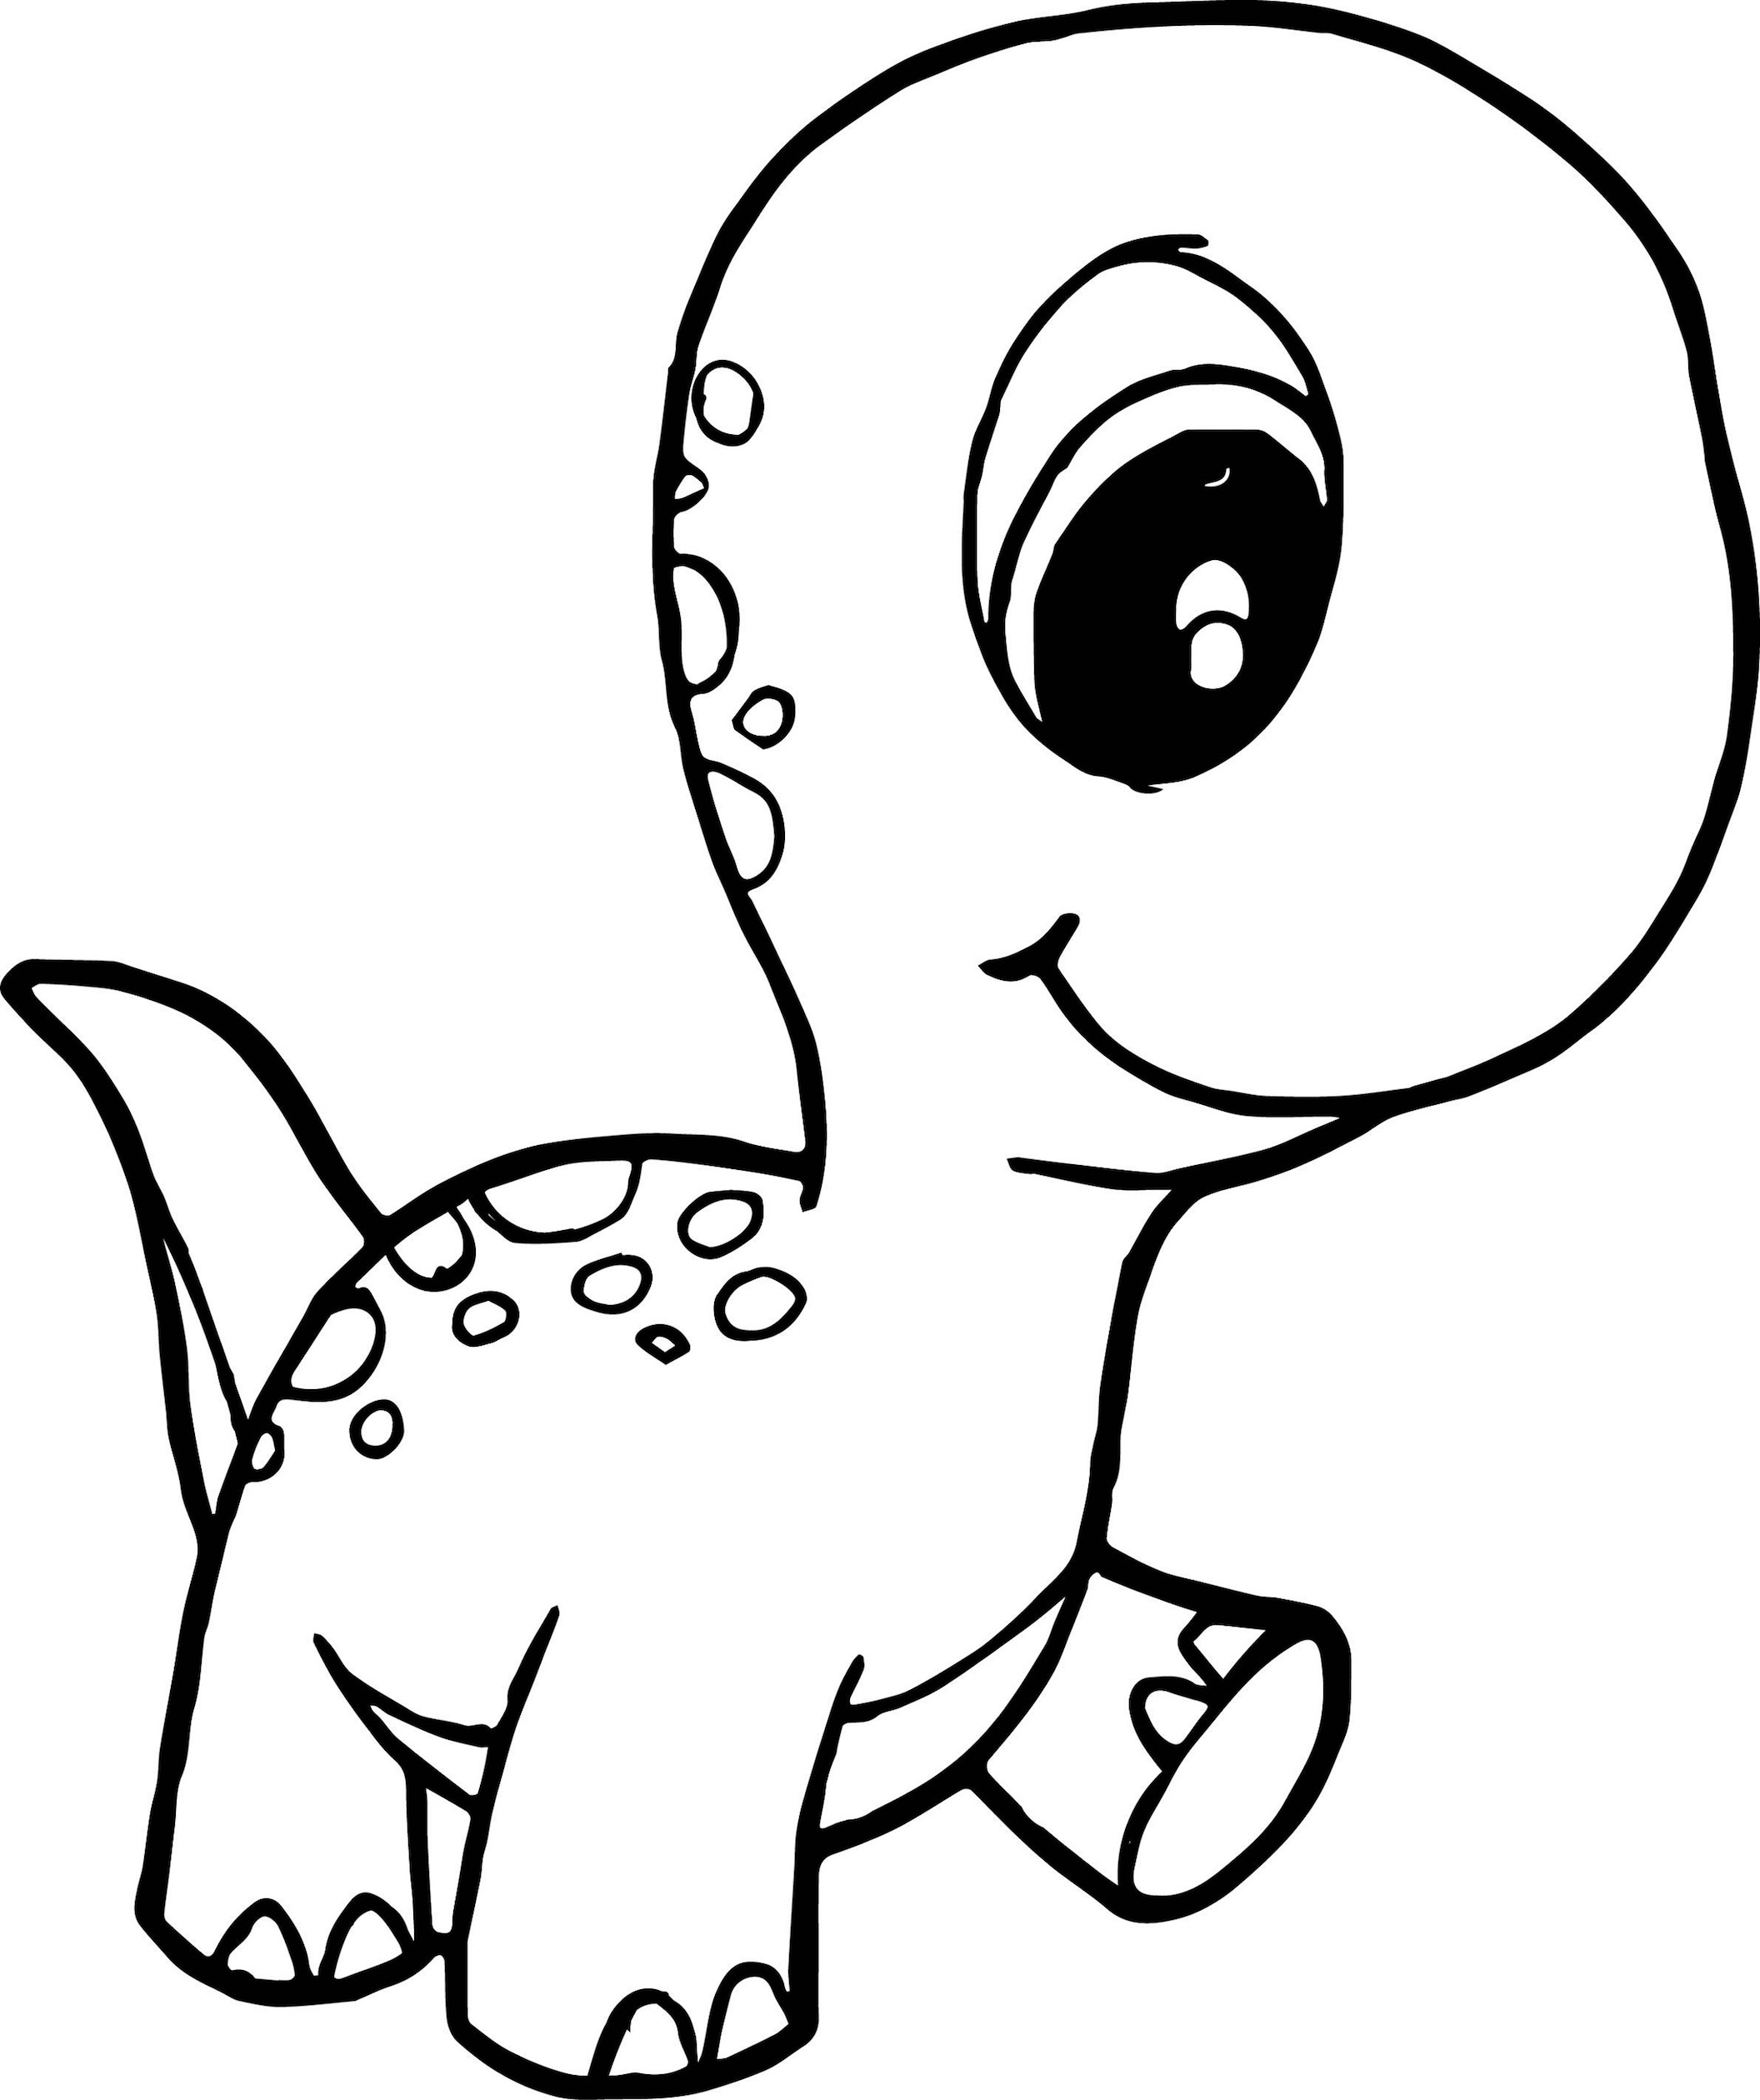 dinosaur coloring pages for kids print download dinosaur t rex coloring pages for kids pages for kids dinosaur coloring